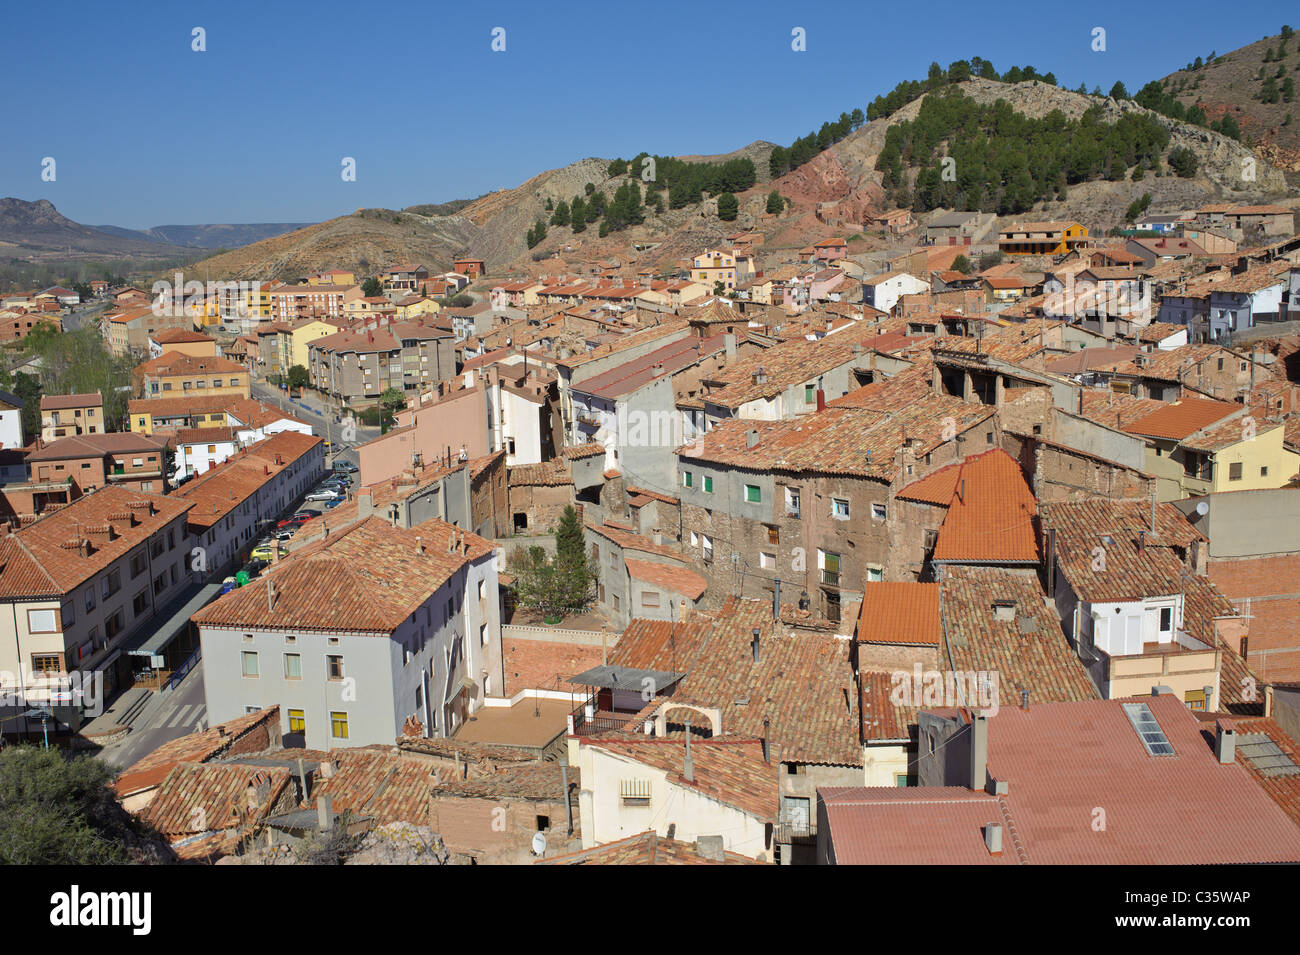 A mining town in Teruel province with red tiled roofs - Stock Image